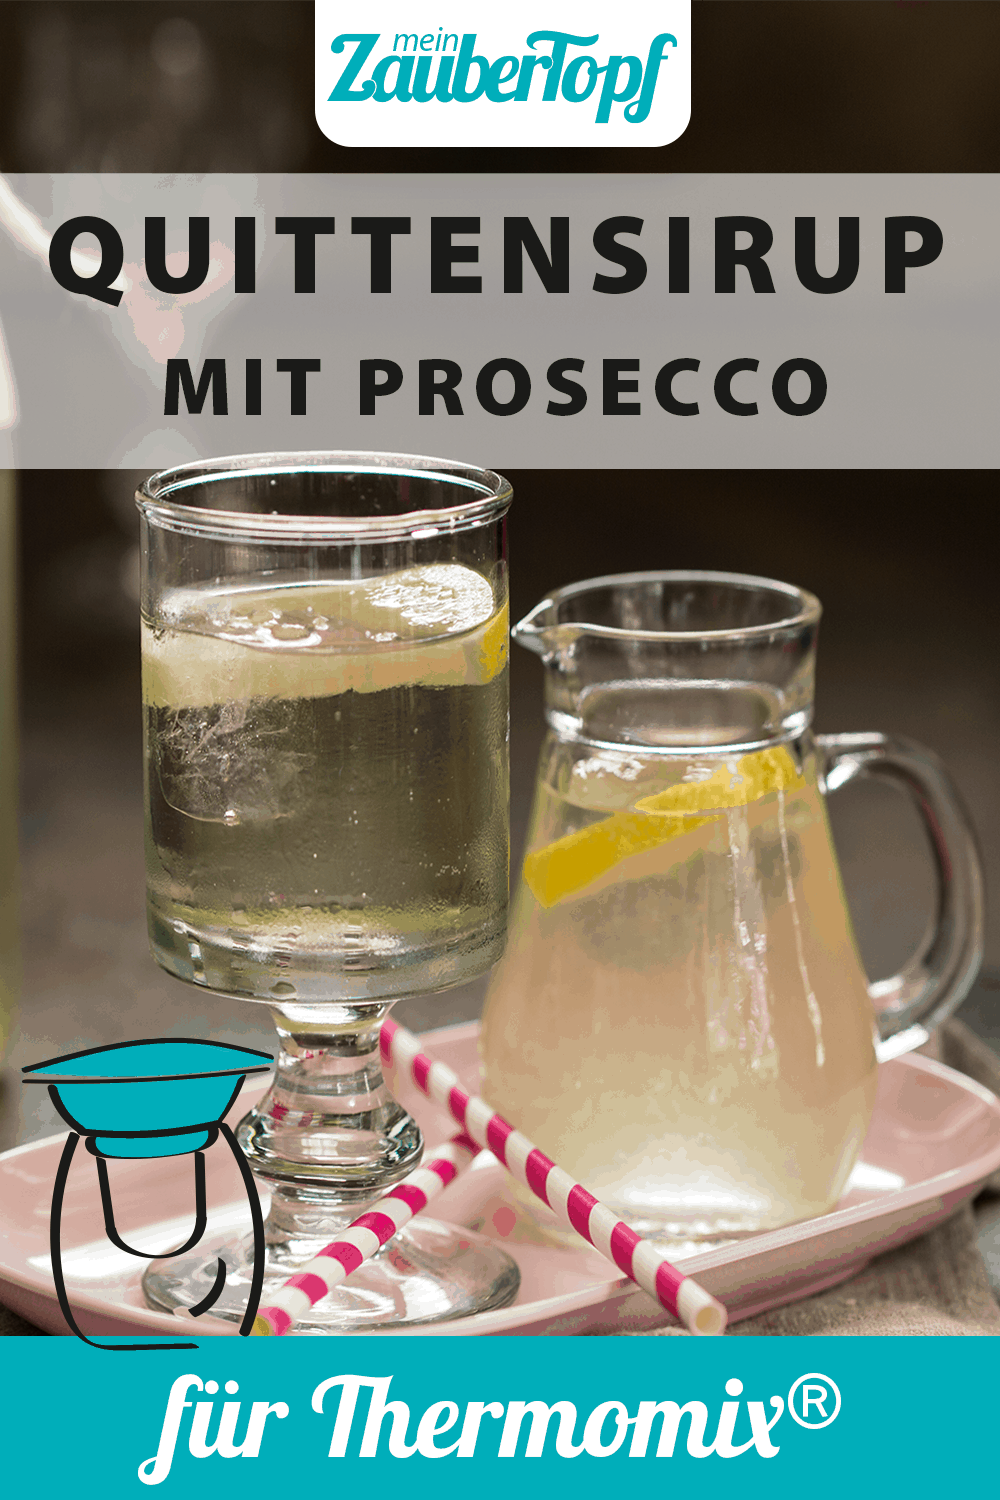 Quittensirup mit Prosecco aus dem Thermomix® – Foto: Kathrin Knoll